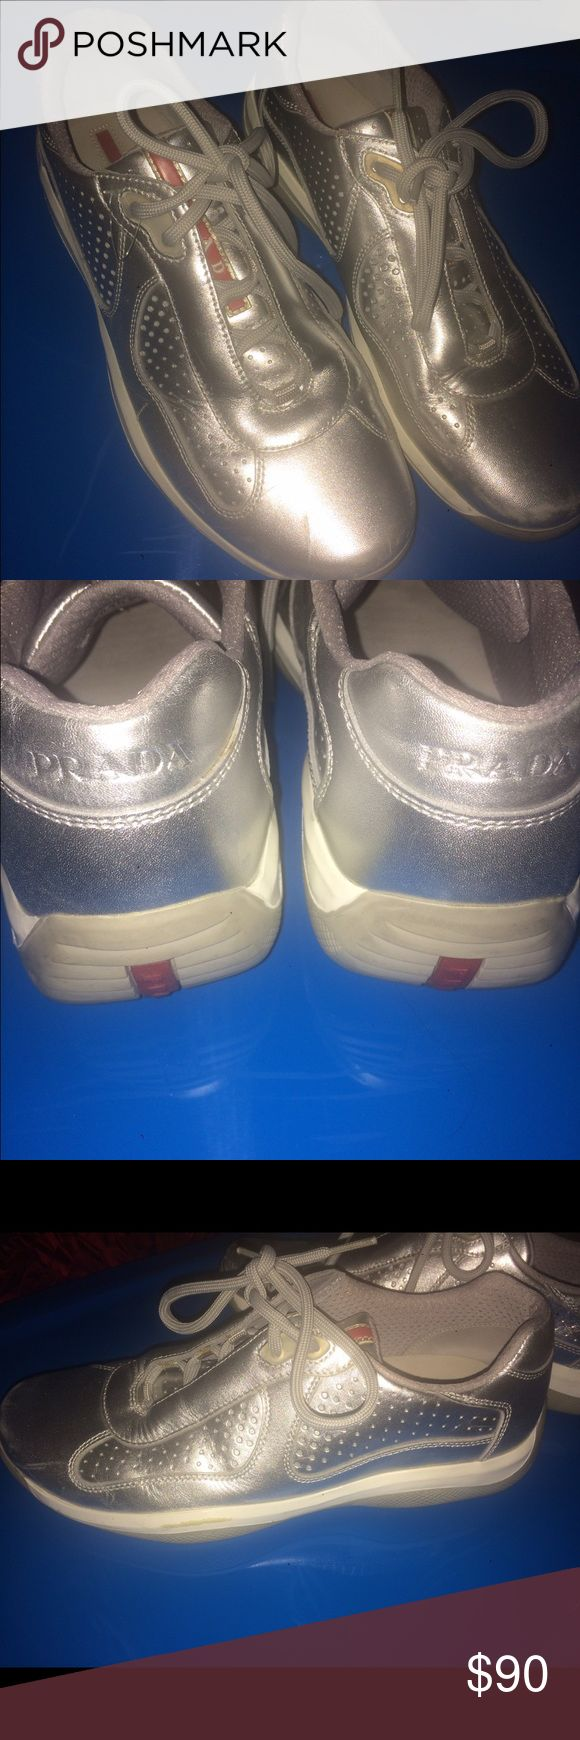 Men's Prada sneakers size 8 Men's Prada Sneakers silver size 8 Prada Shoes Sneakers